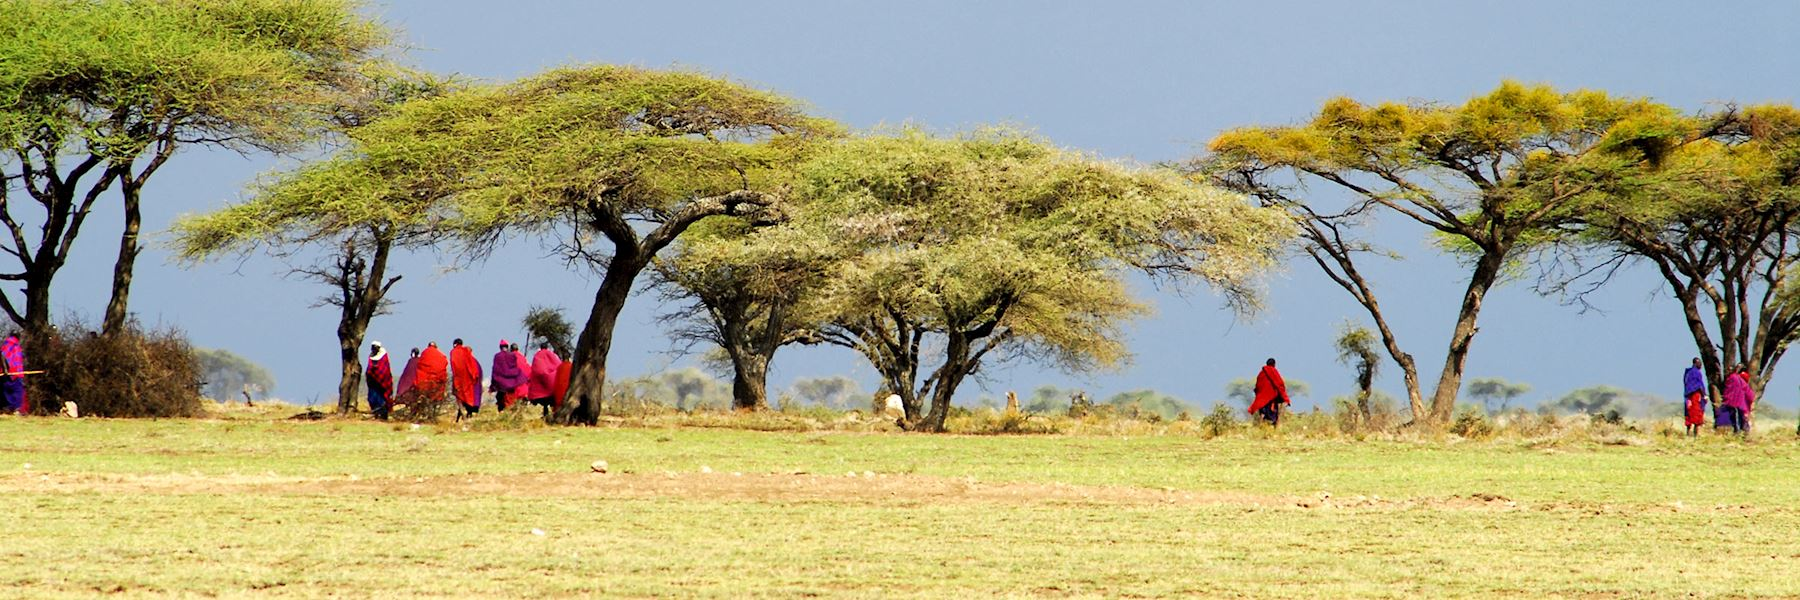 Tanzania safaris & vacations